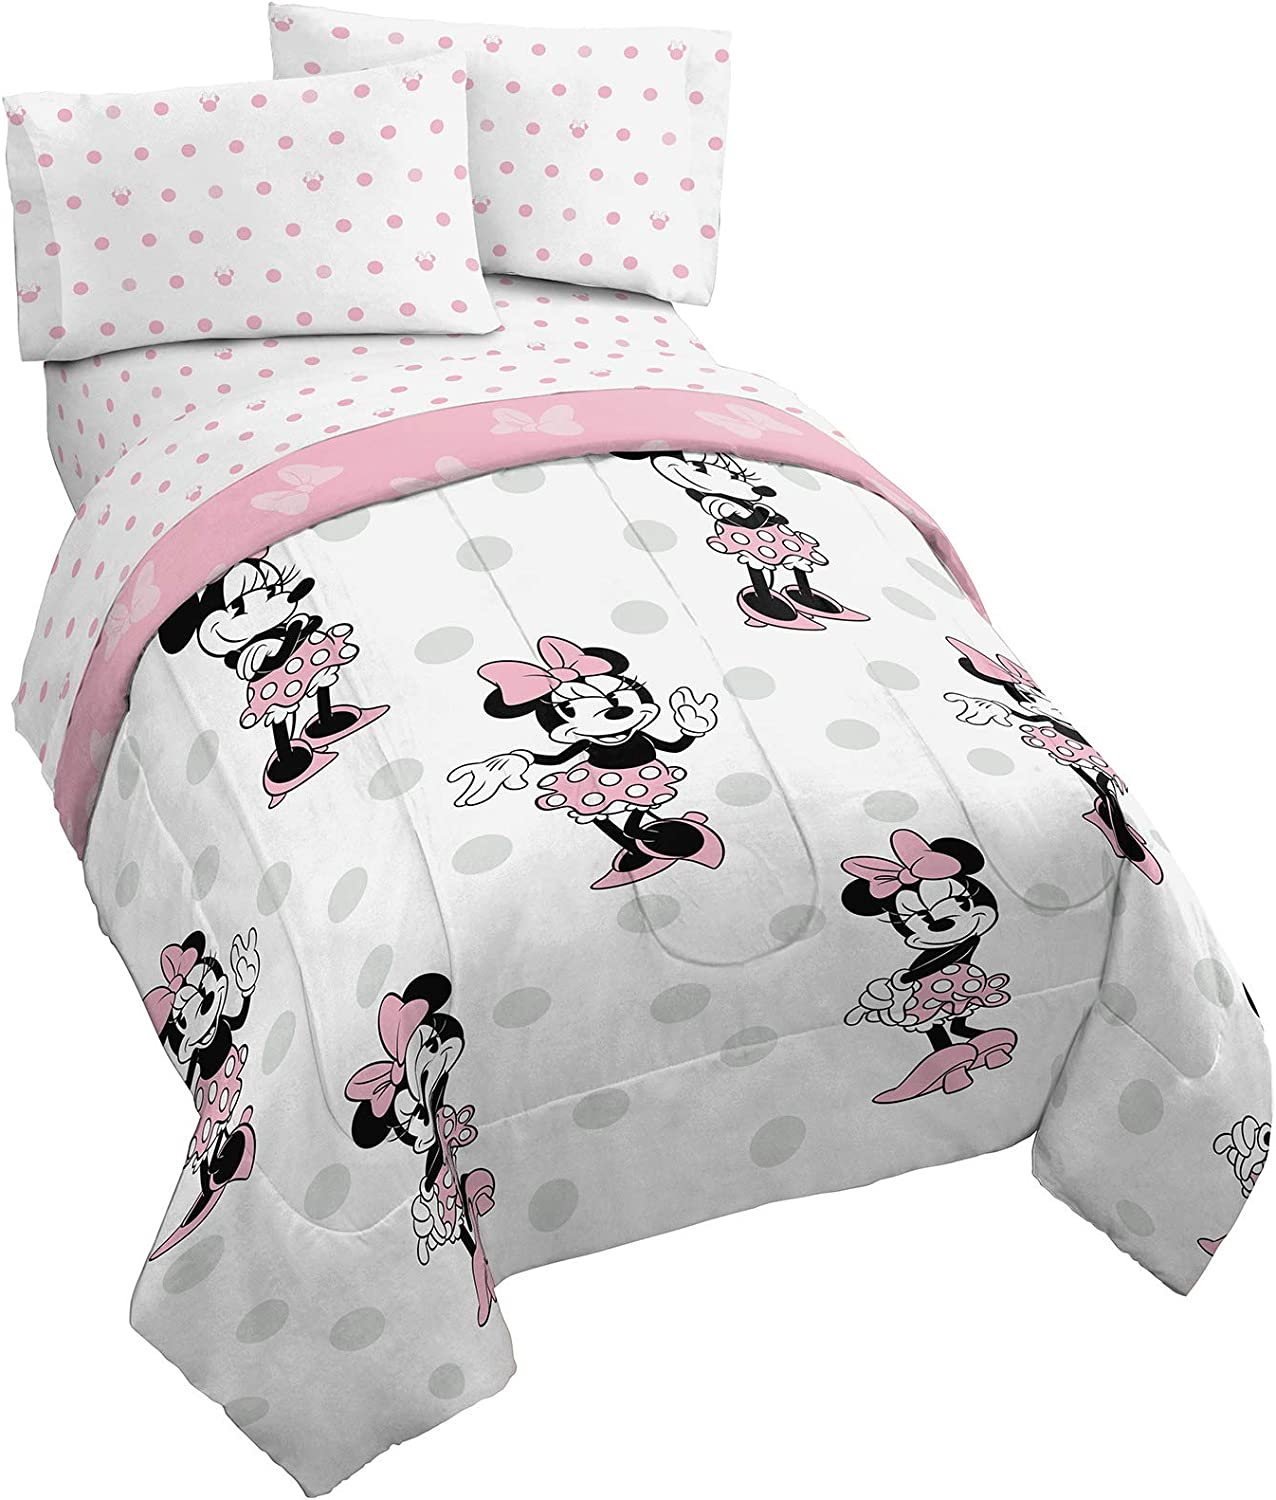 Jay Franco Disney Minnie Mouse Dots 5 Piece Full Bed Set - Includes Reversible Comforter & Sheet Set Bedding - Super Soft Fade Resistant Microfiber (Official Disney Product)